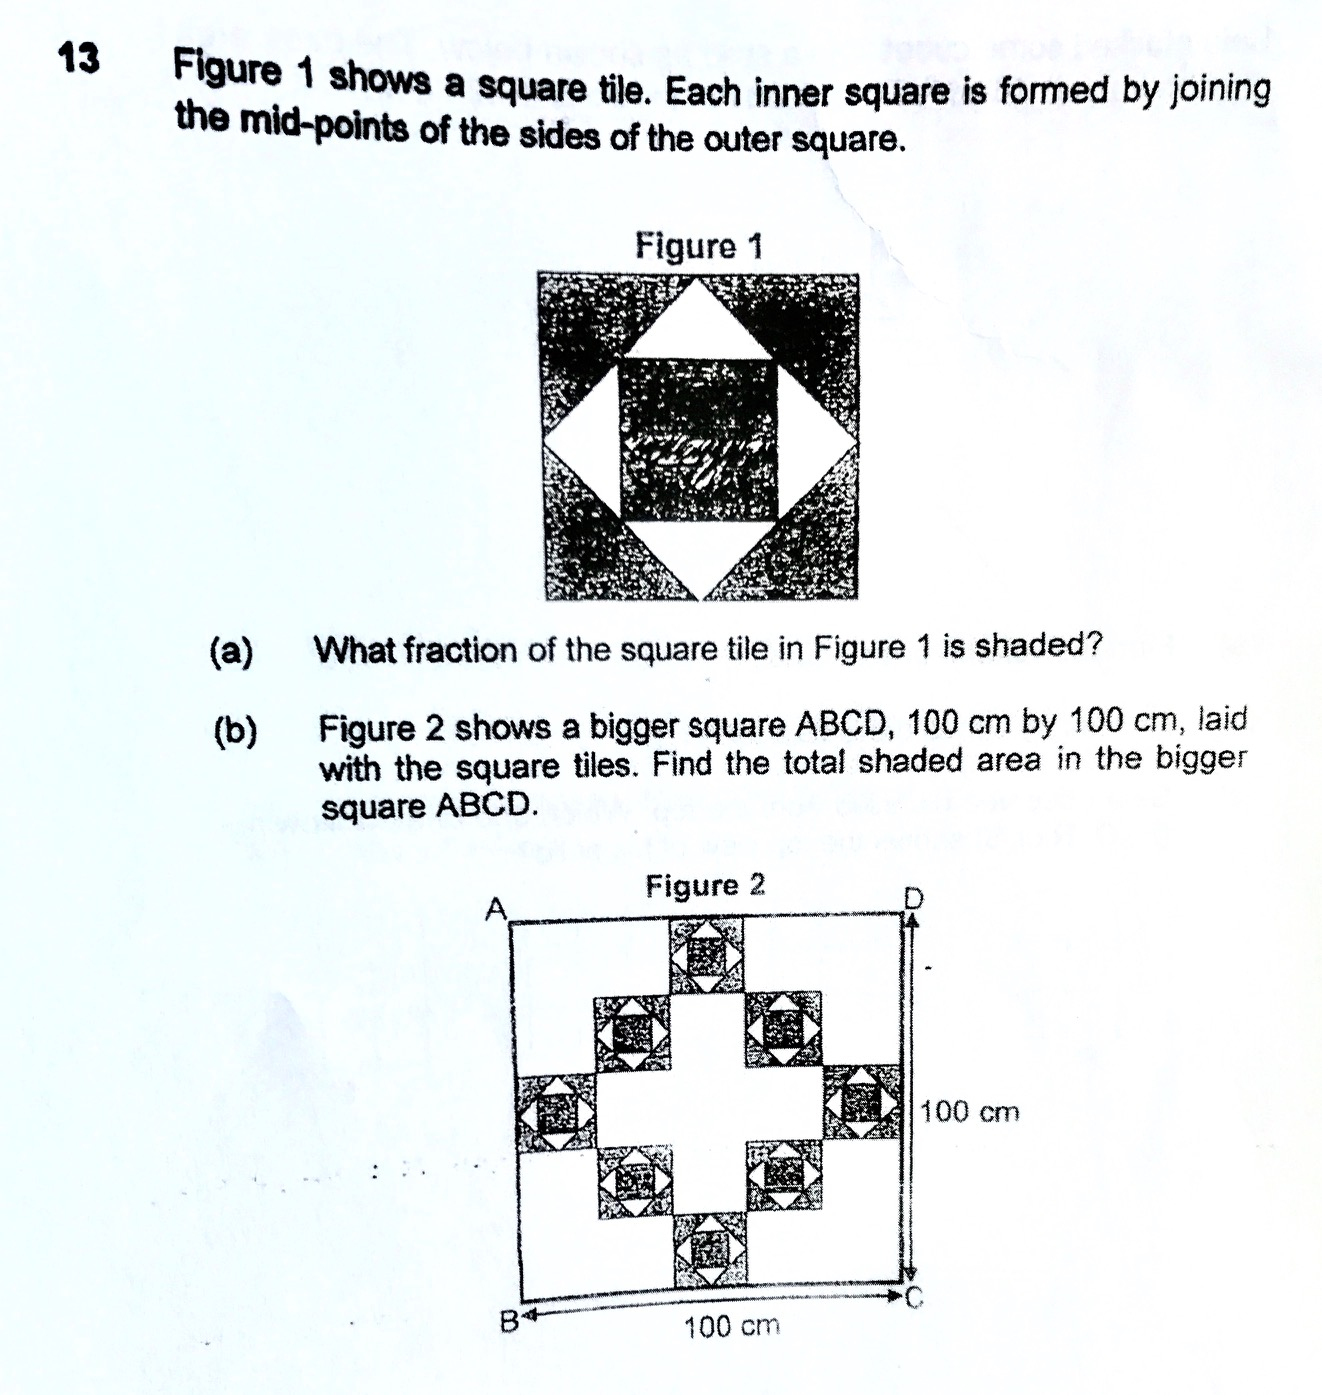 Chang S Math Blog P6 Ratio Circles Geometry Angles Volume Fraction Area Fr Red Swas Via